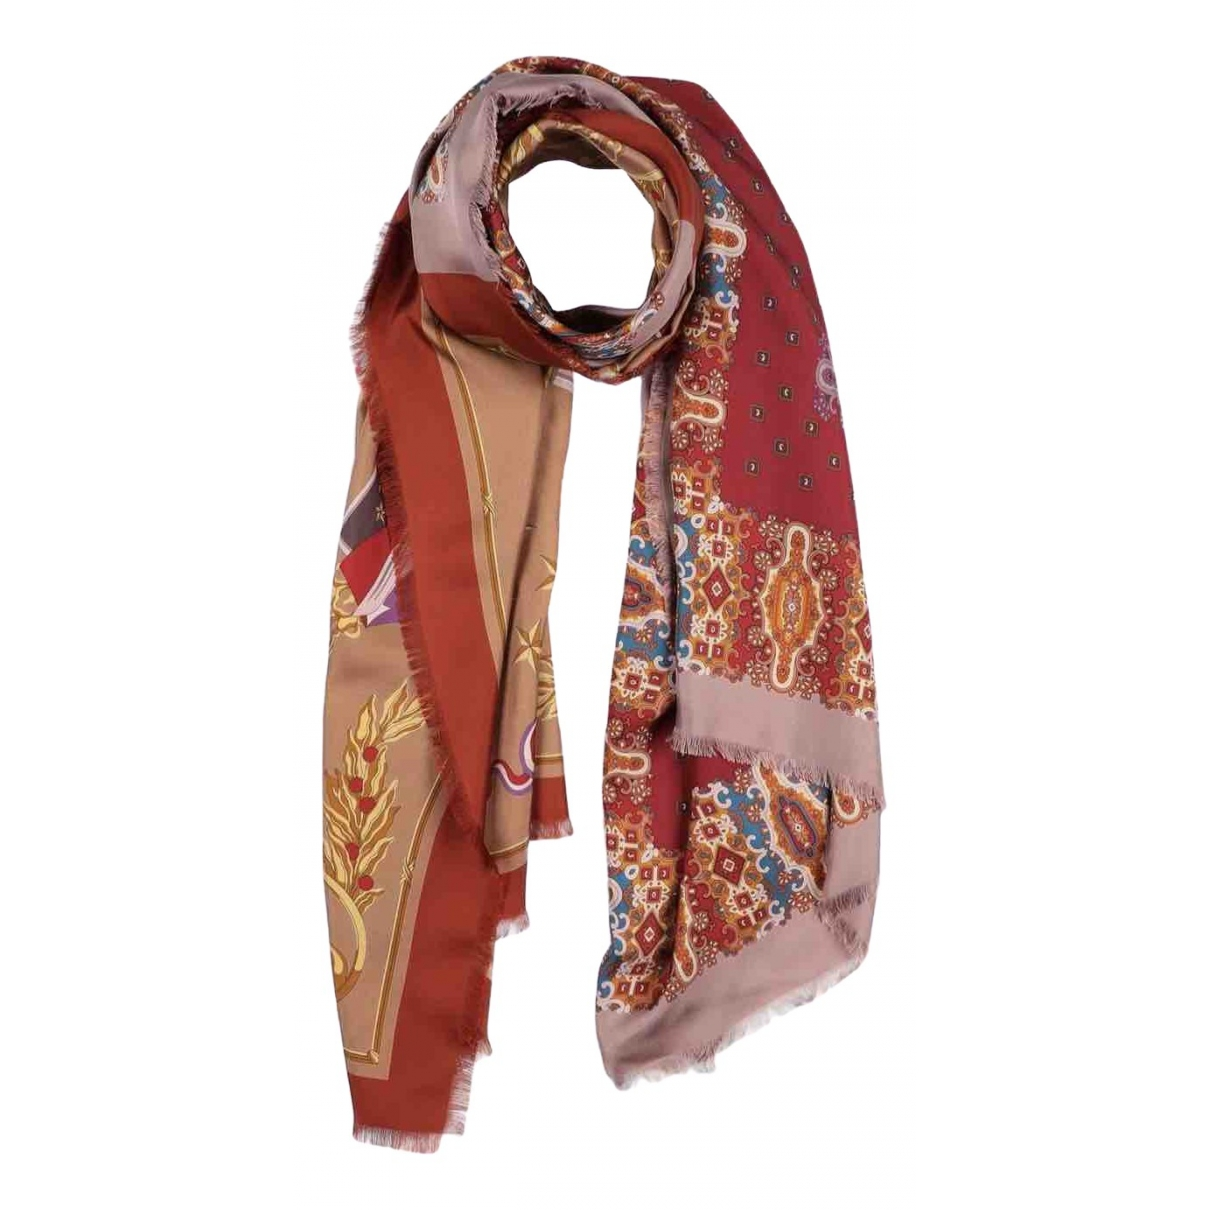 Franco Ferrari \N Silk scarf for Women \N